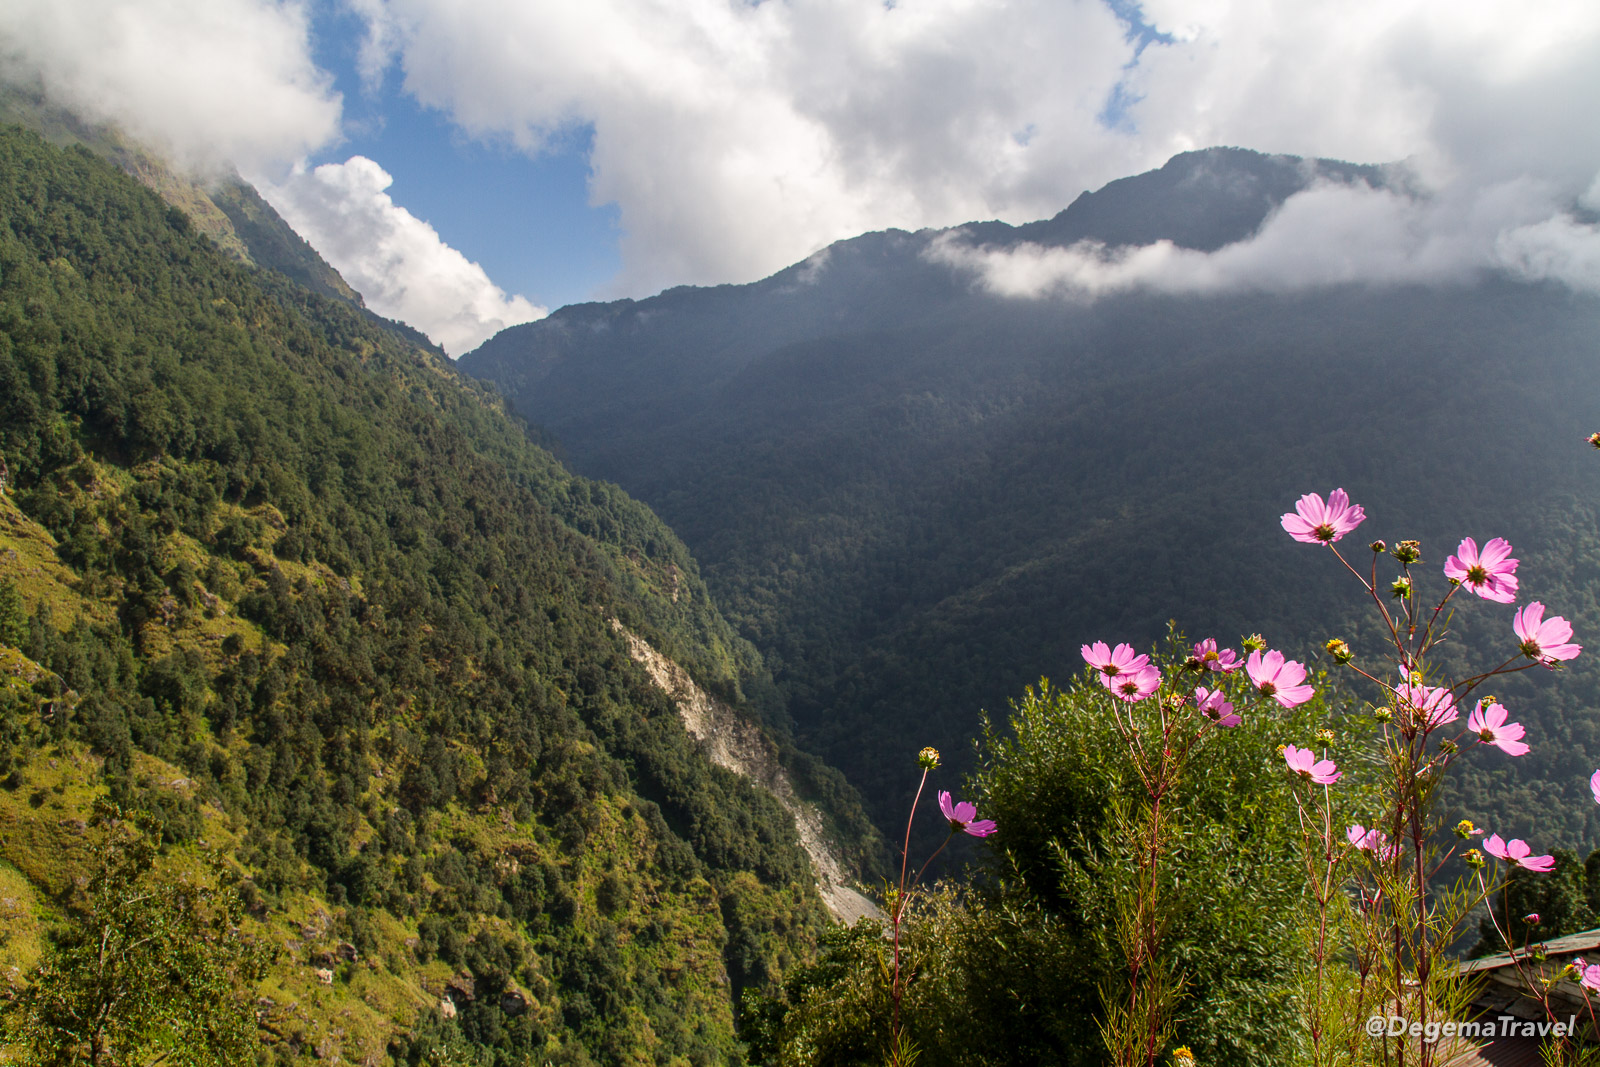 The view from Ulleri in the Annapurna Conservation Area, Nepal